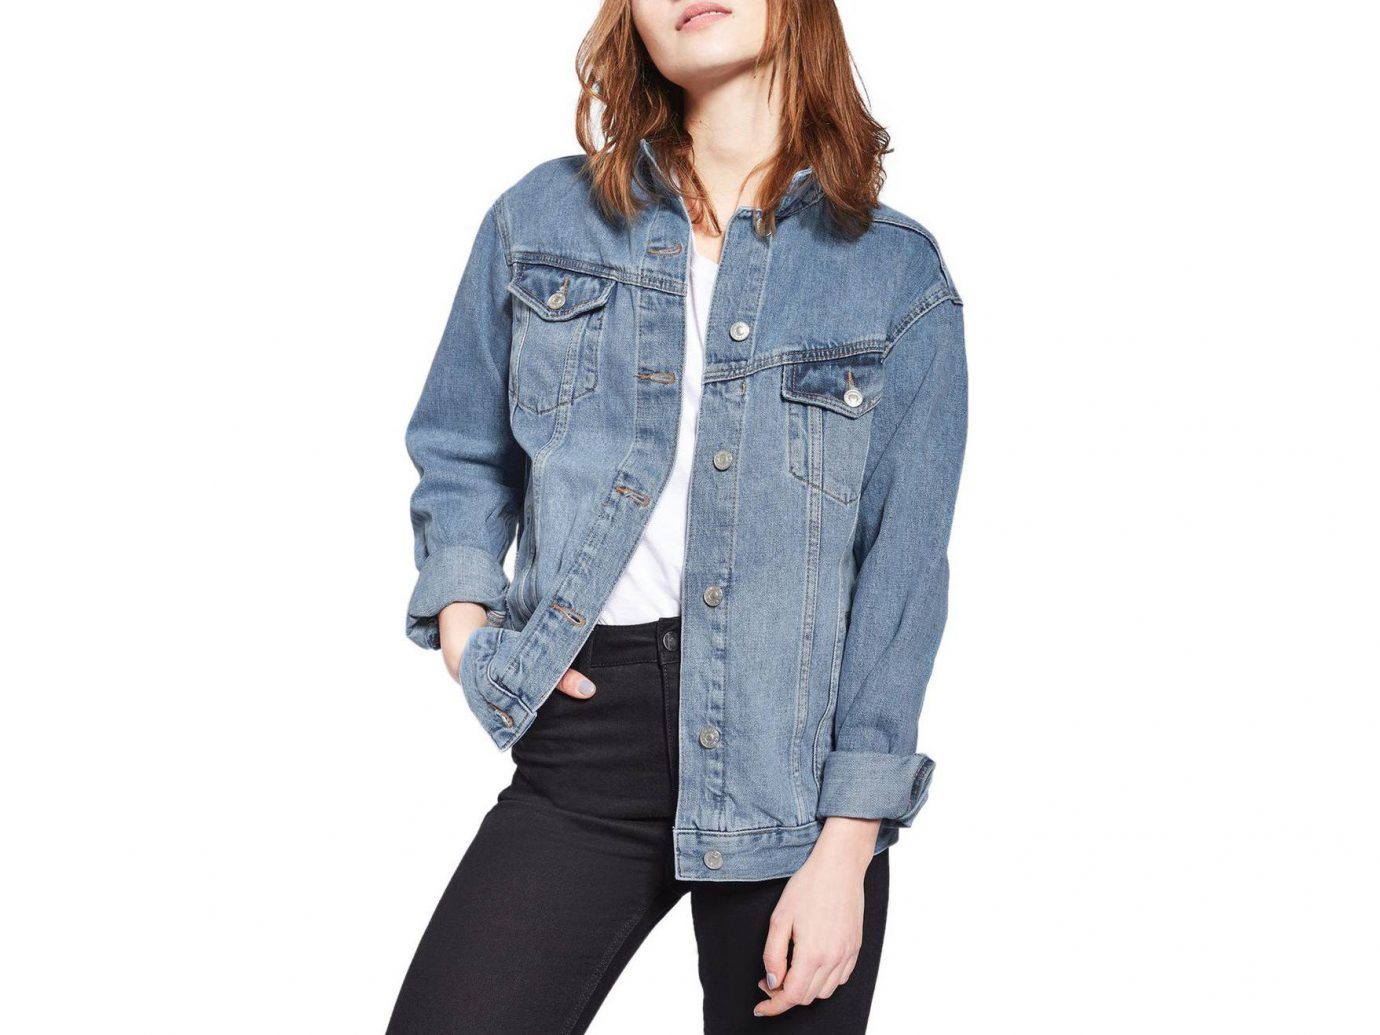 Style + Design Travel Shop person clothing denim jacket wearing jeans sleeve coat trousers posing trouser